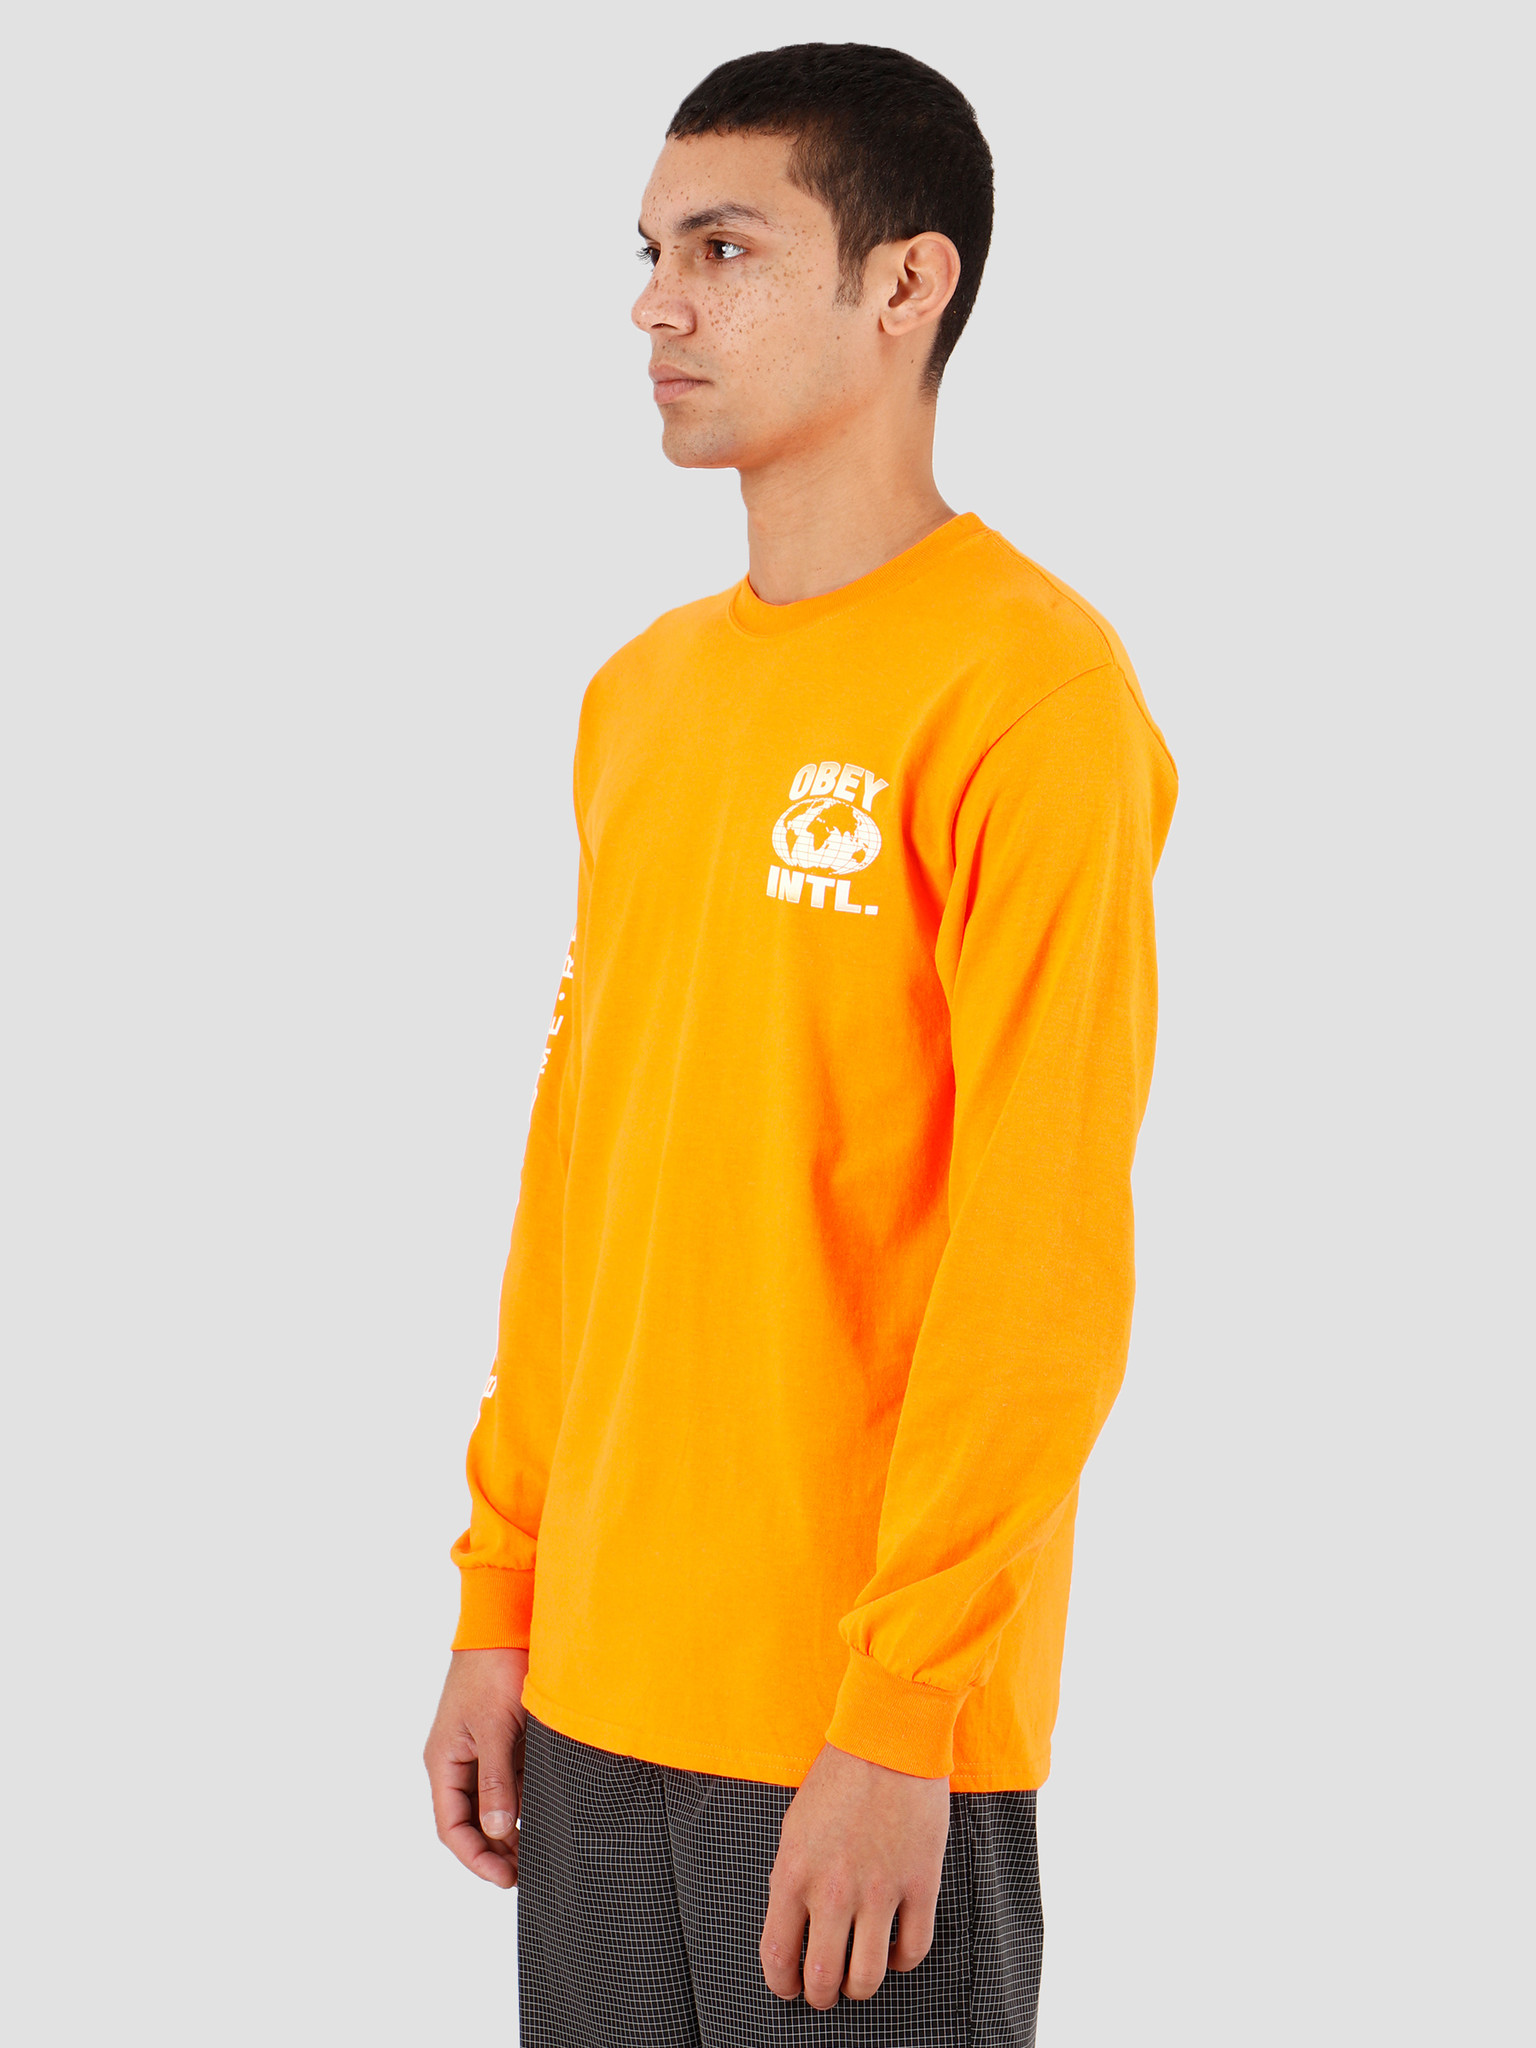 Obey Obey OBEY Consume Repeat Intl. Saftey orange 164902149SOR